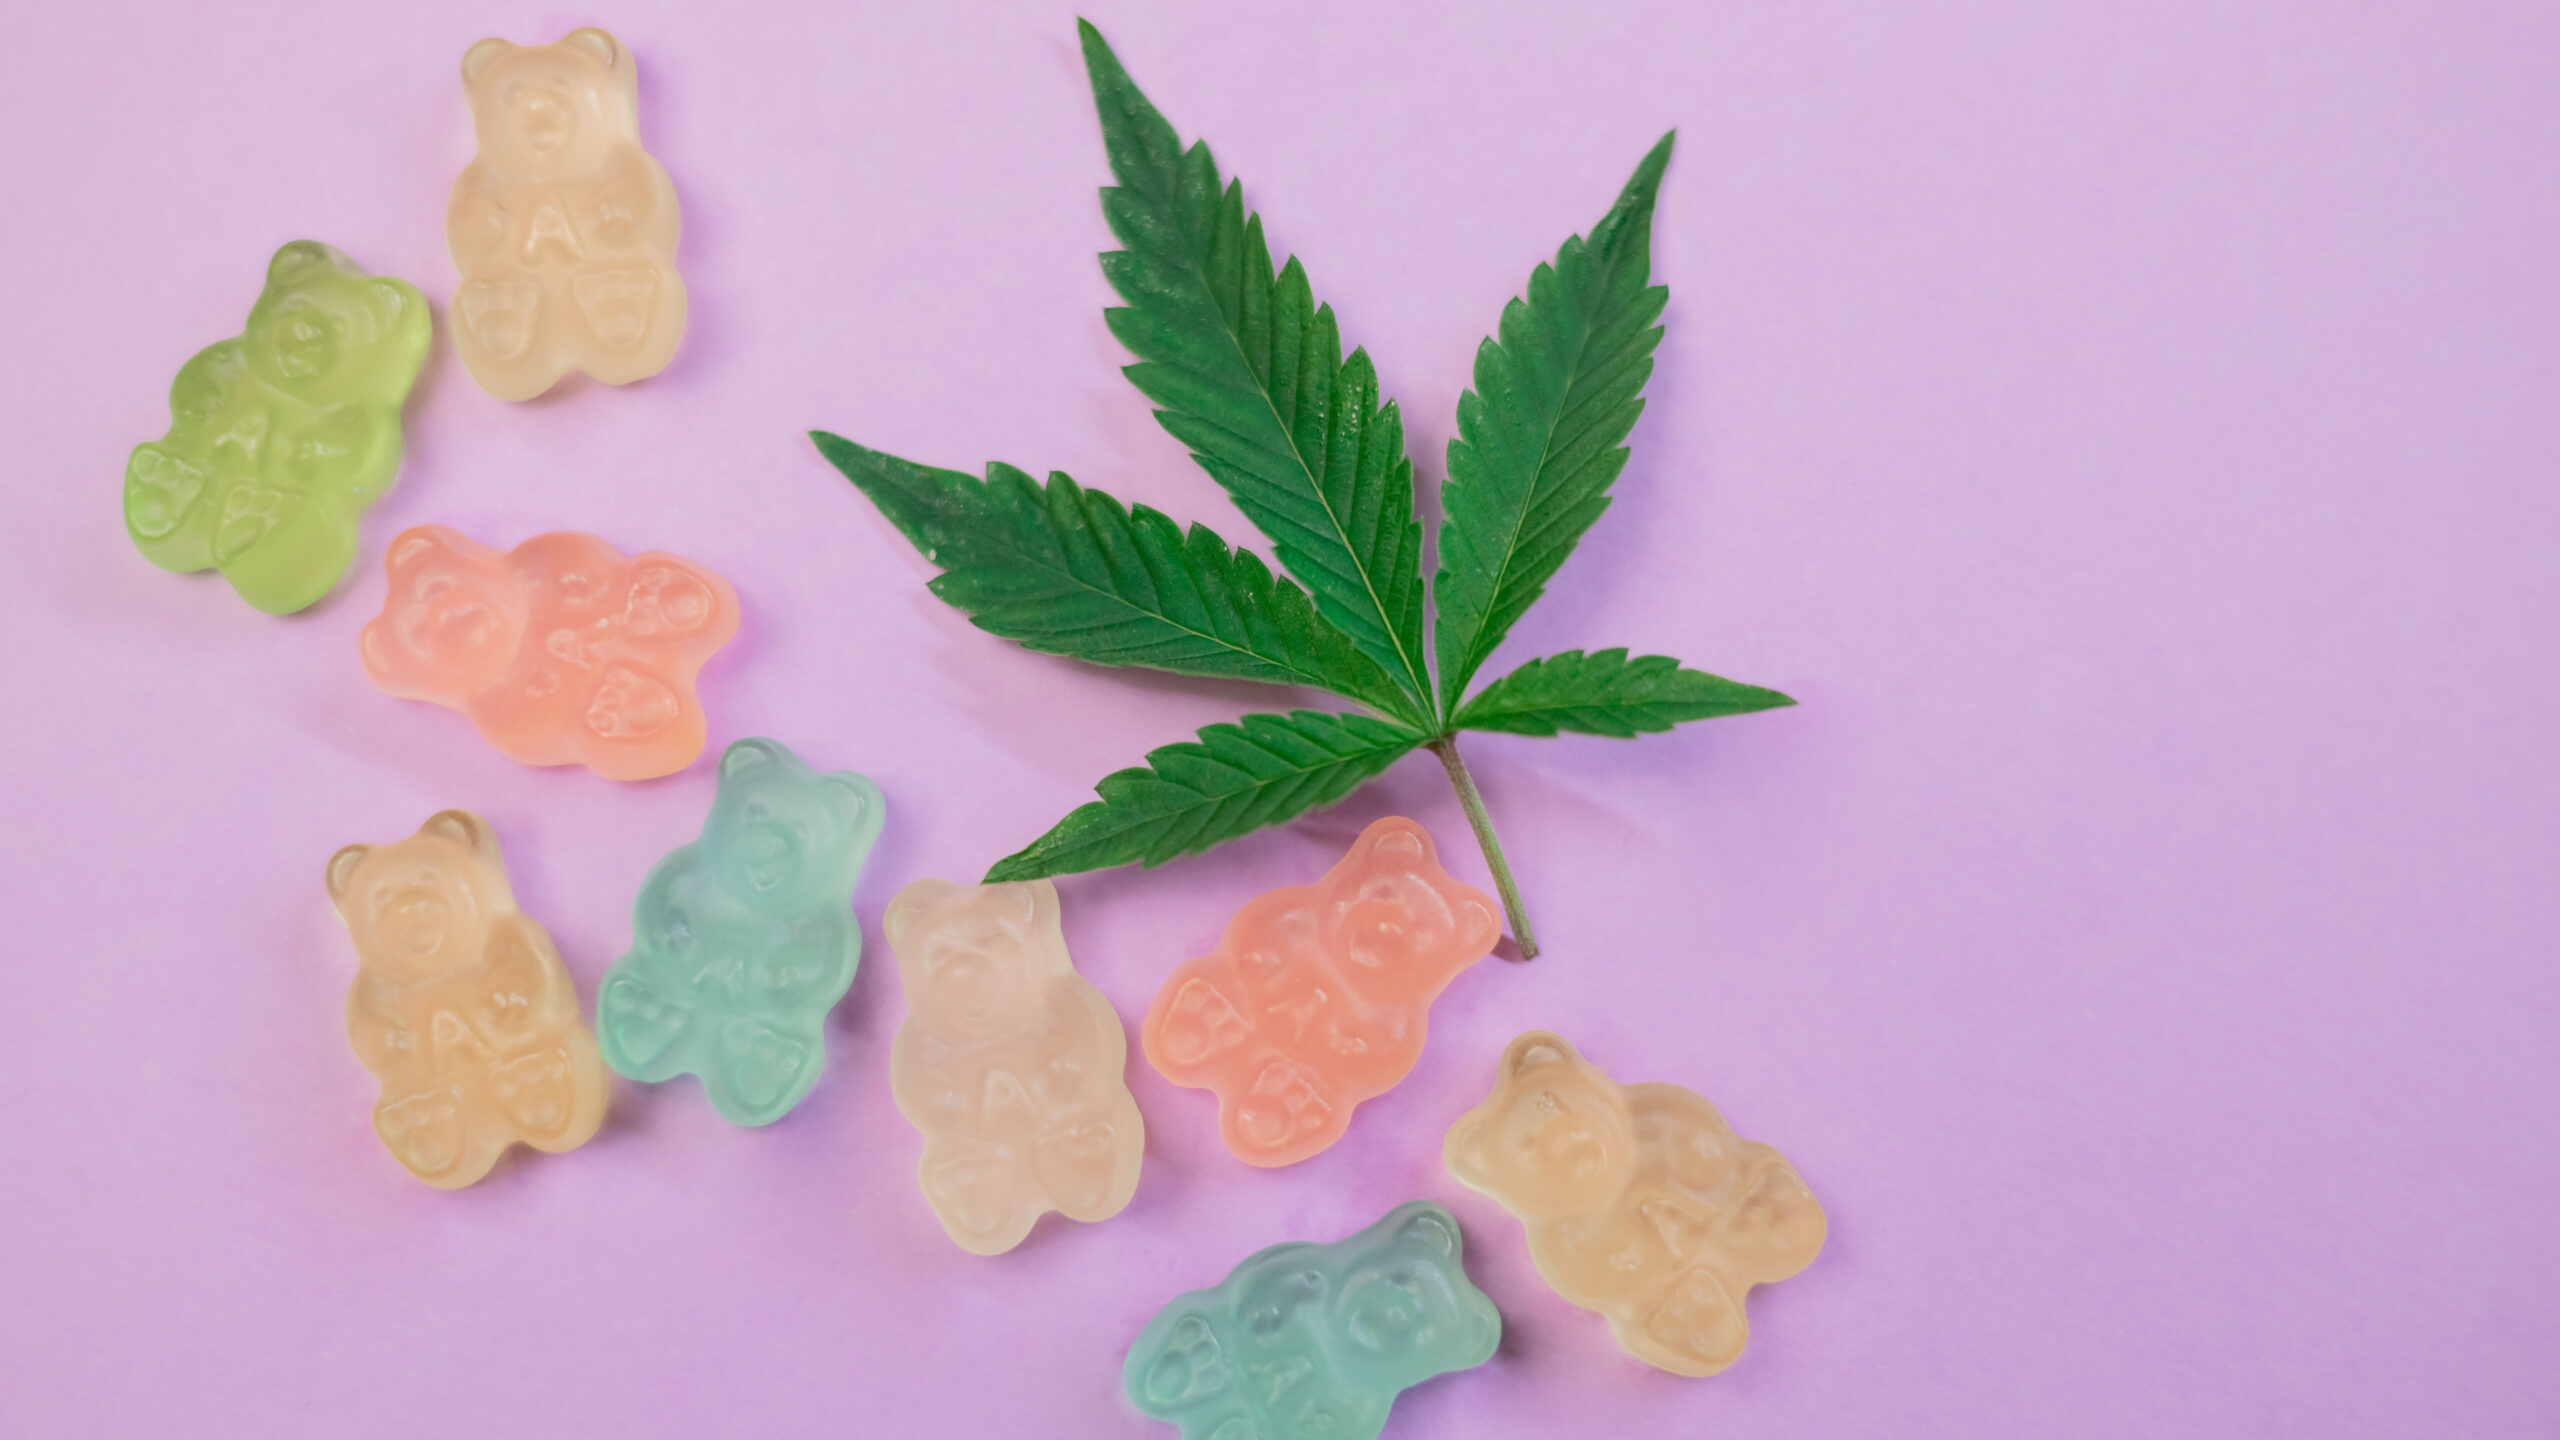 Multiple colours of gummy bears lay next to cannabis leaf on a lavender coloured background.